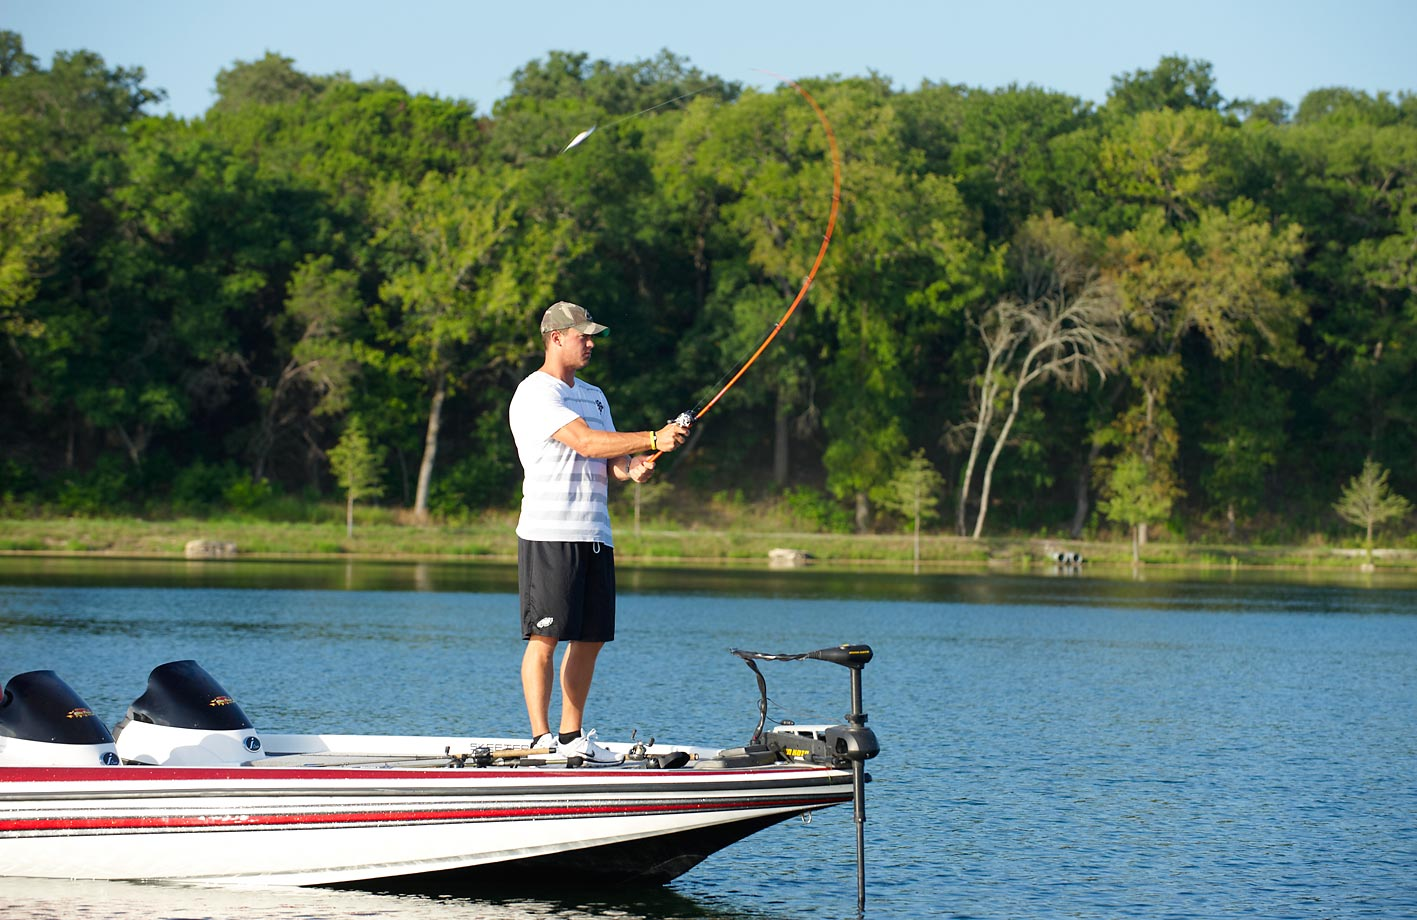 The then-Eagles quarterback fishes for bass in Lake Granbury in Granbury, Texas, in the 2010 off-season.